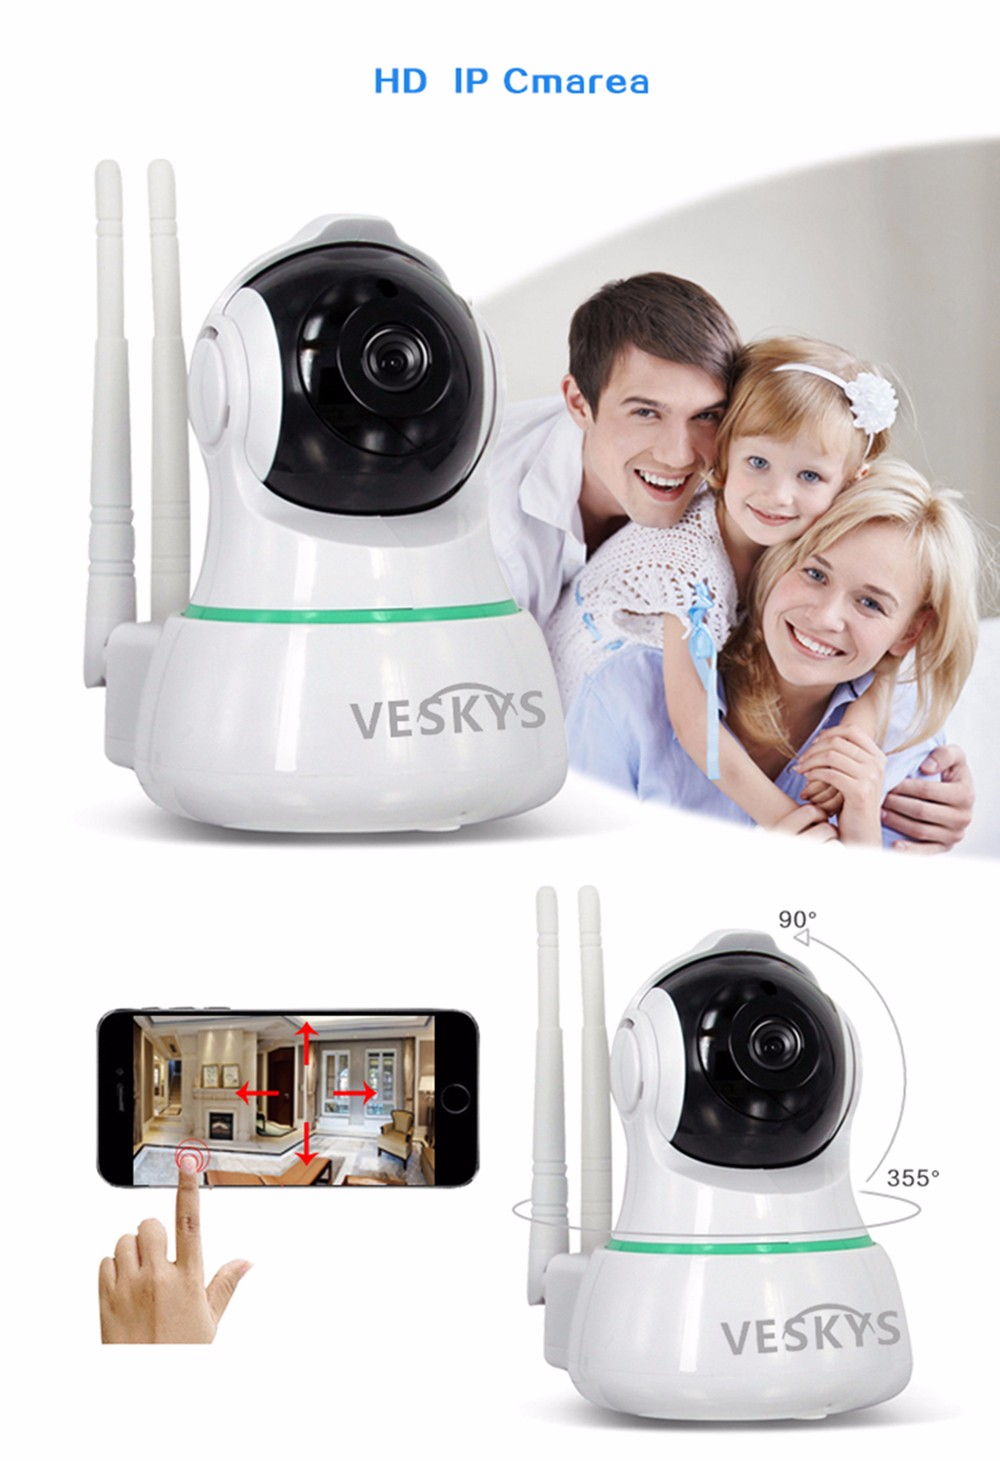 VESKYS N5 1080P WiFi IP Camera 2.0MP for Home Security